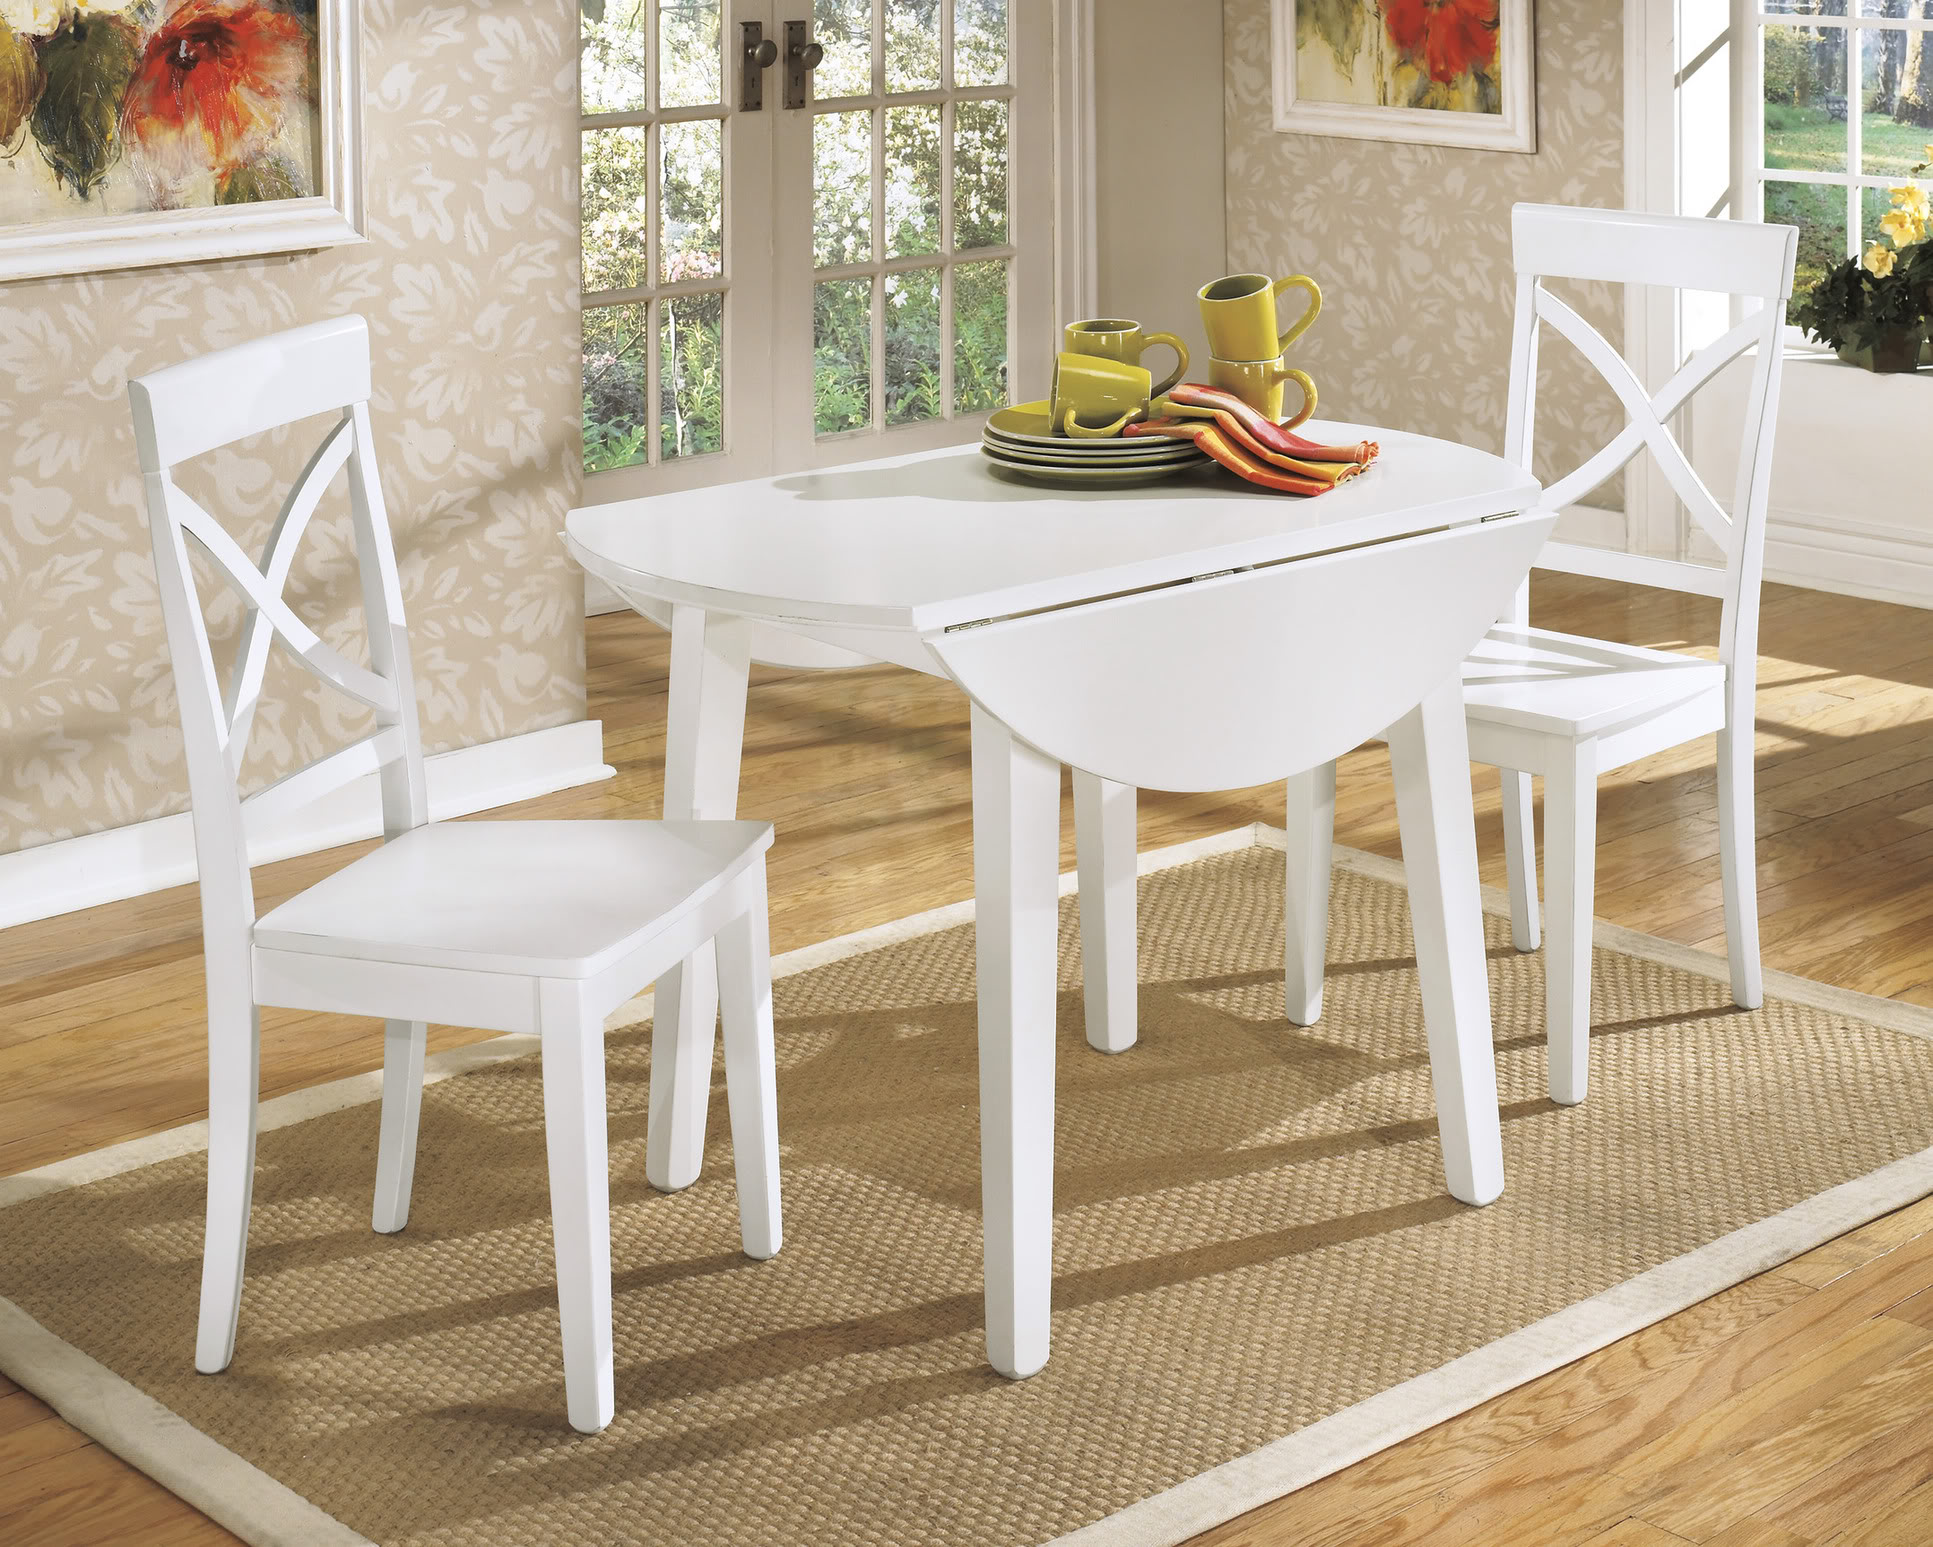 white kitchen tables dish soap dispenser round table and chairs design homesfeed